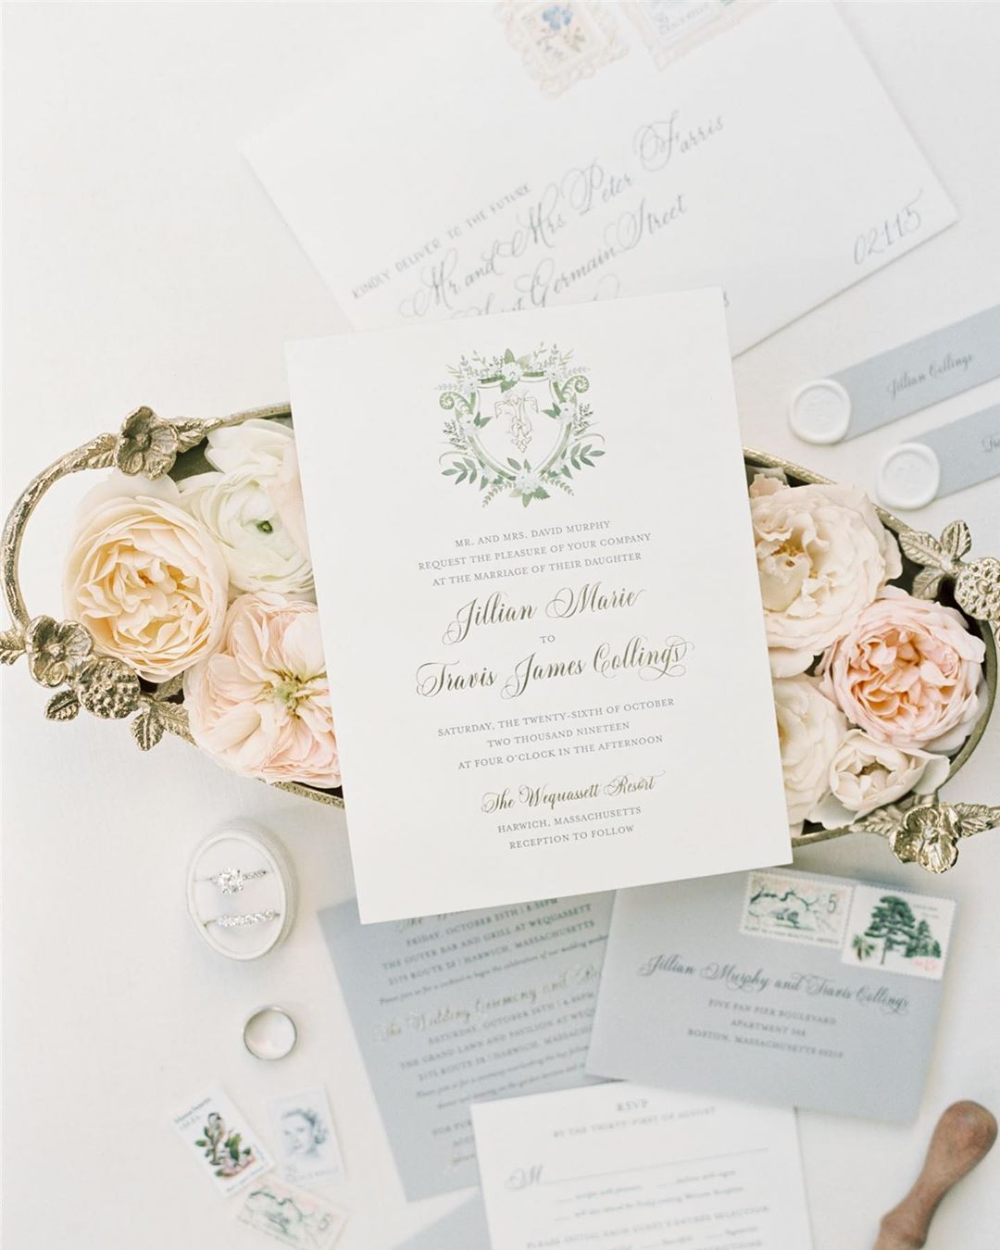 Gold Coast Wedding Invitations: Custom Crest Stationery With Gold Foil Letterpress And